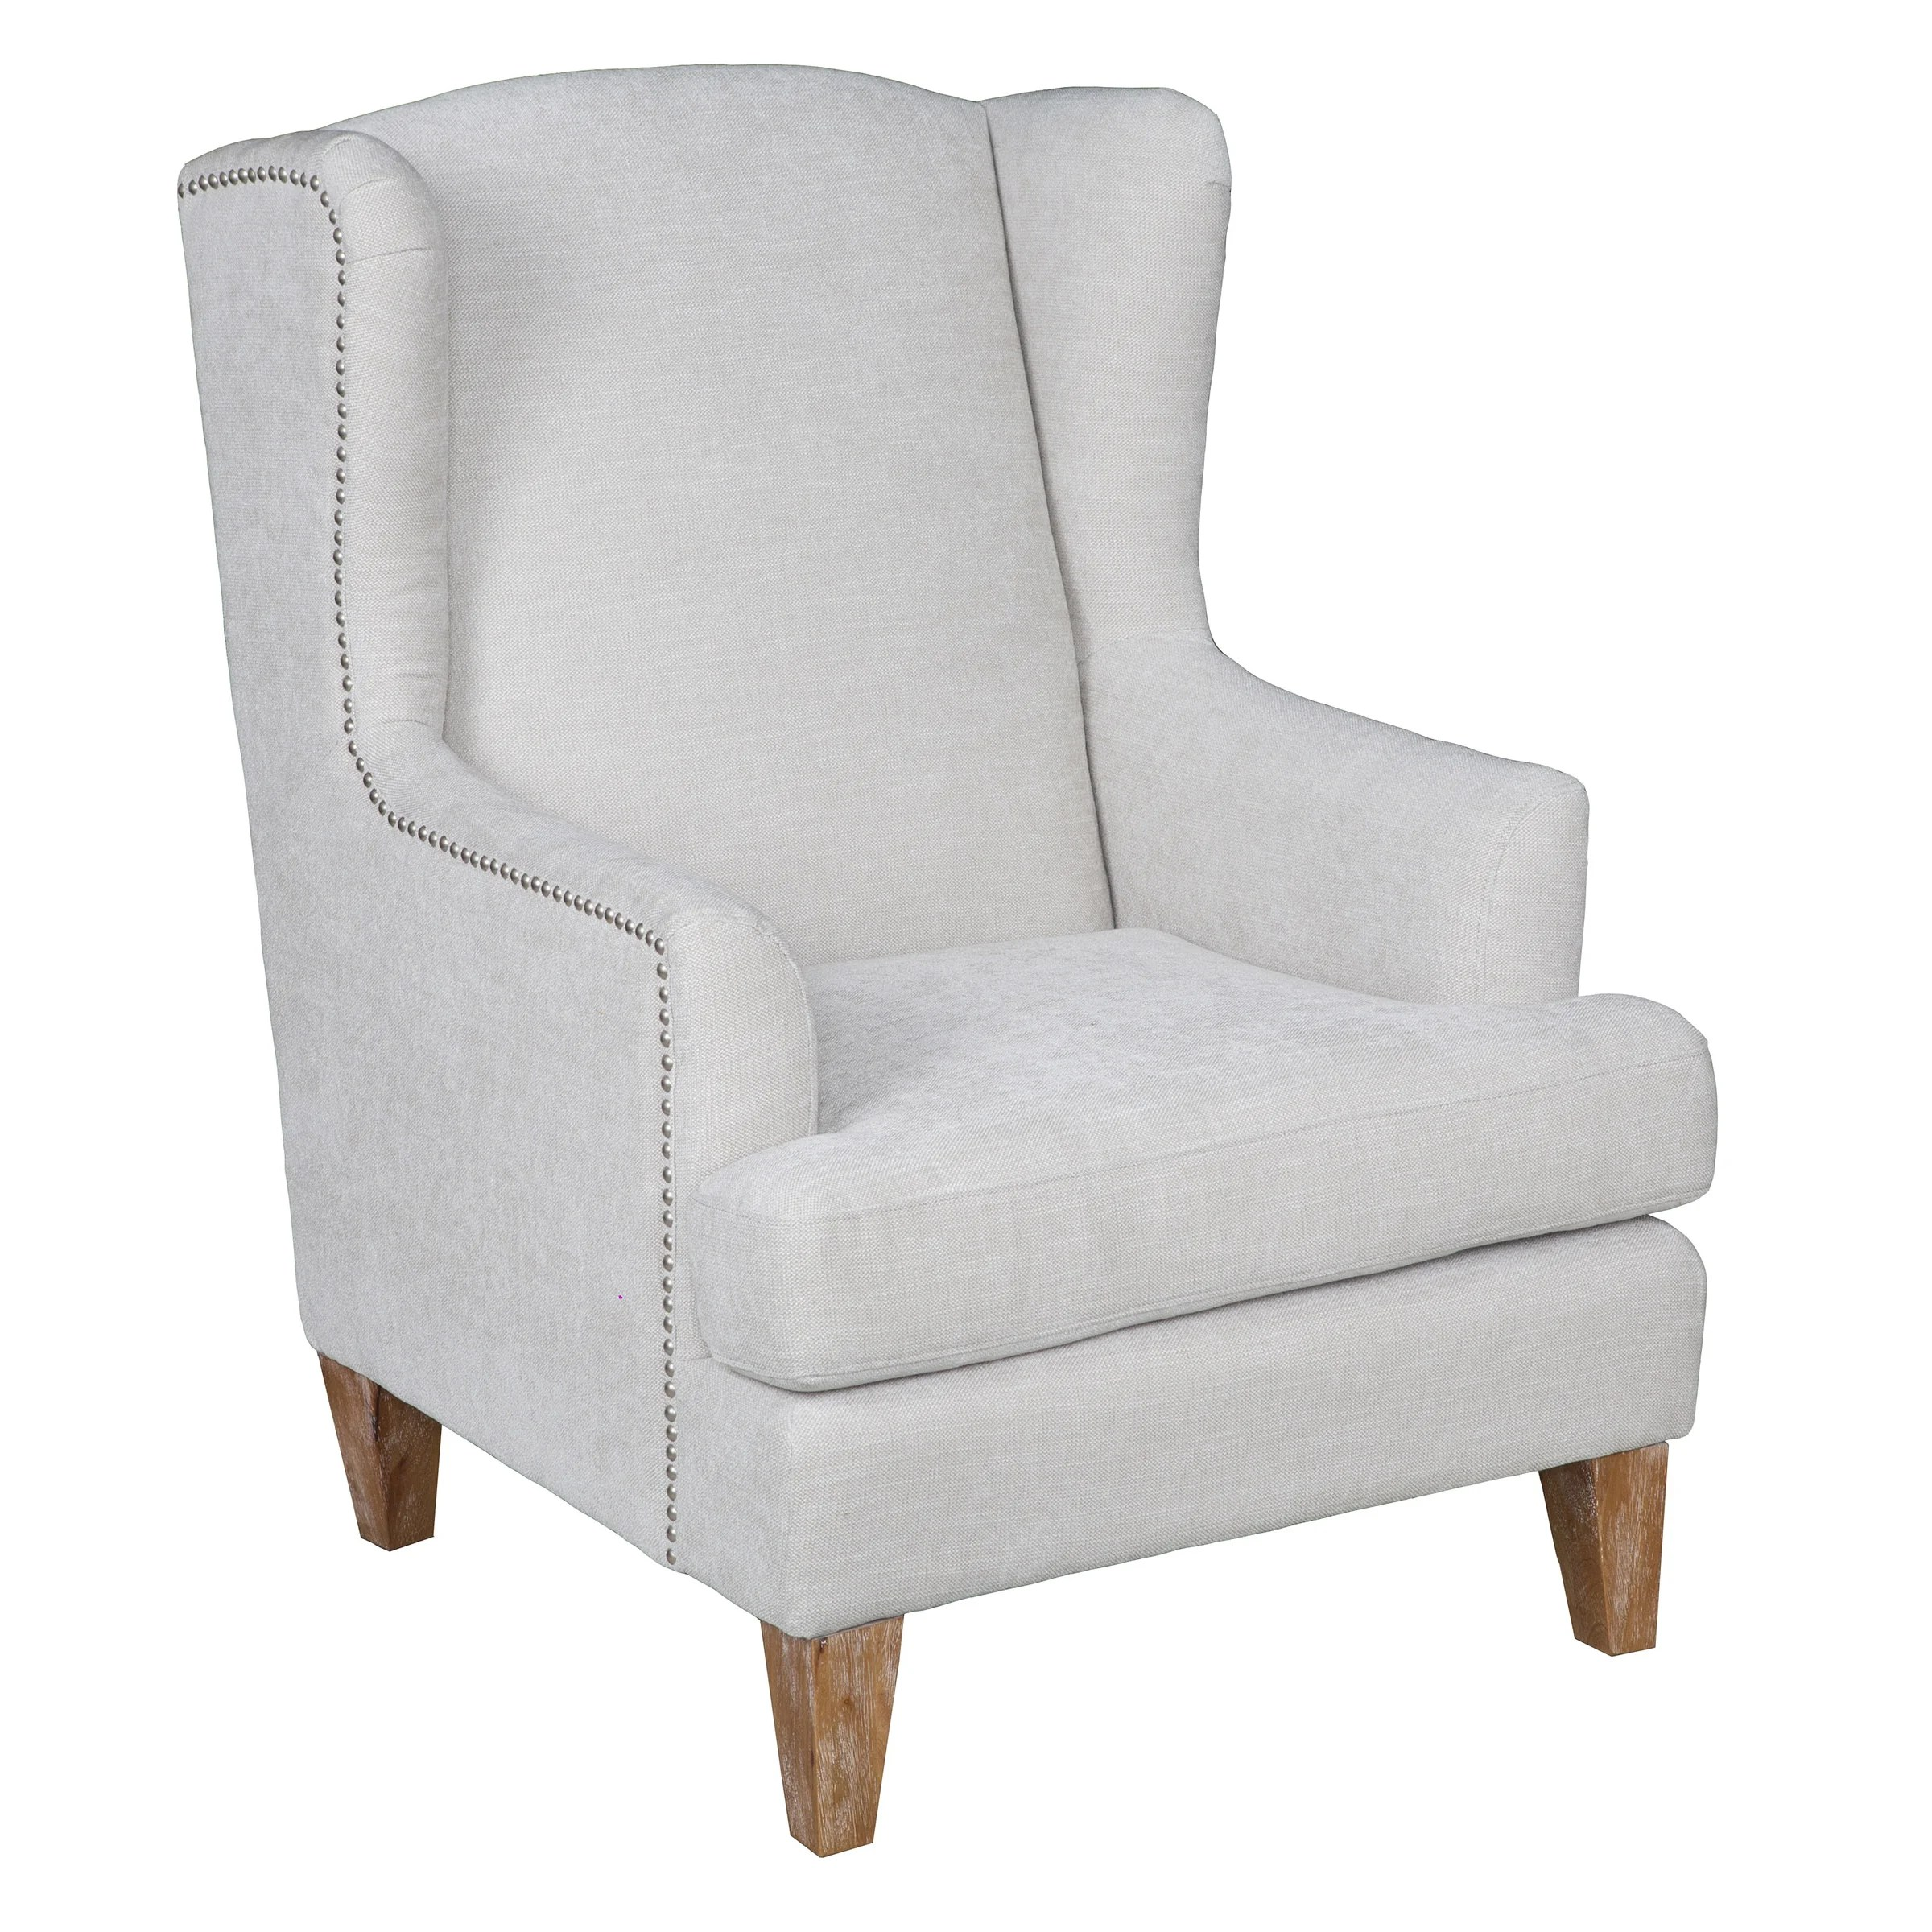 Wayfair Wingback Chair One Allium Way Epine Wingback Chair Wayfair